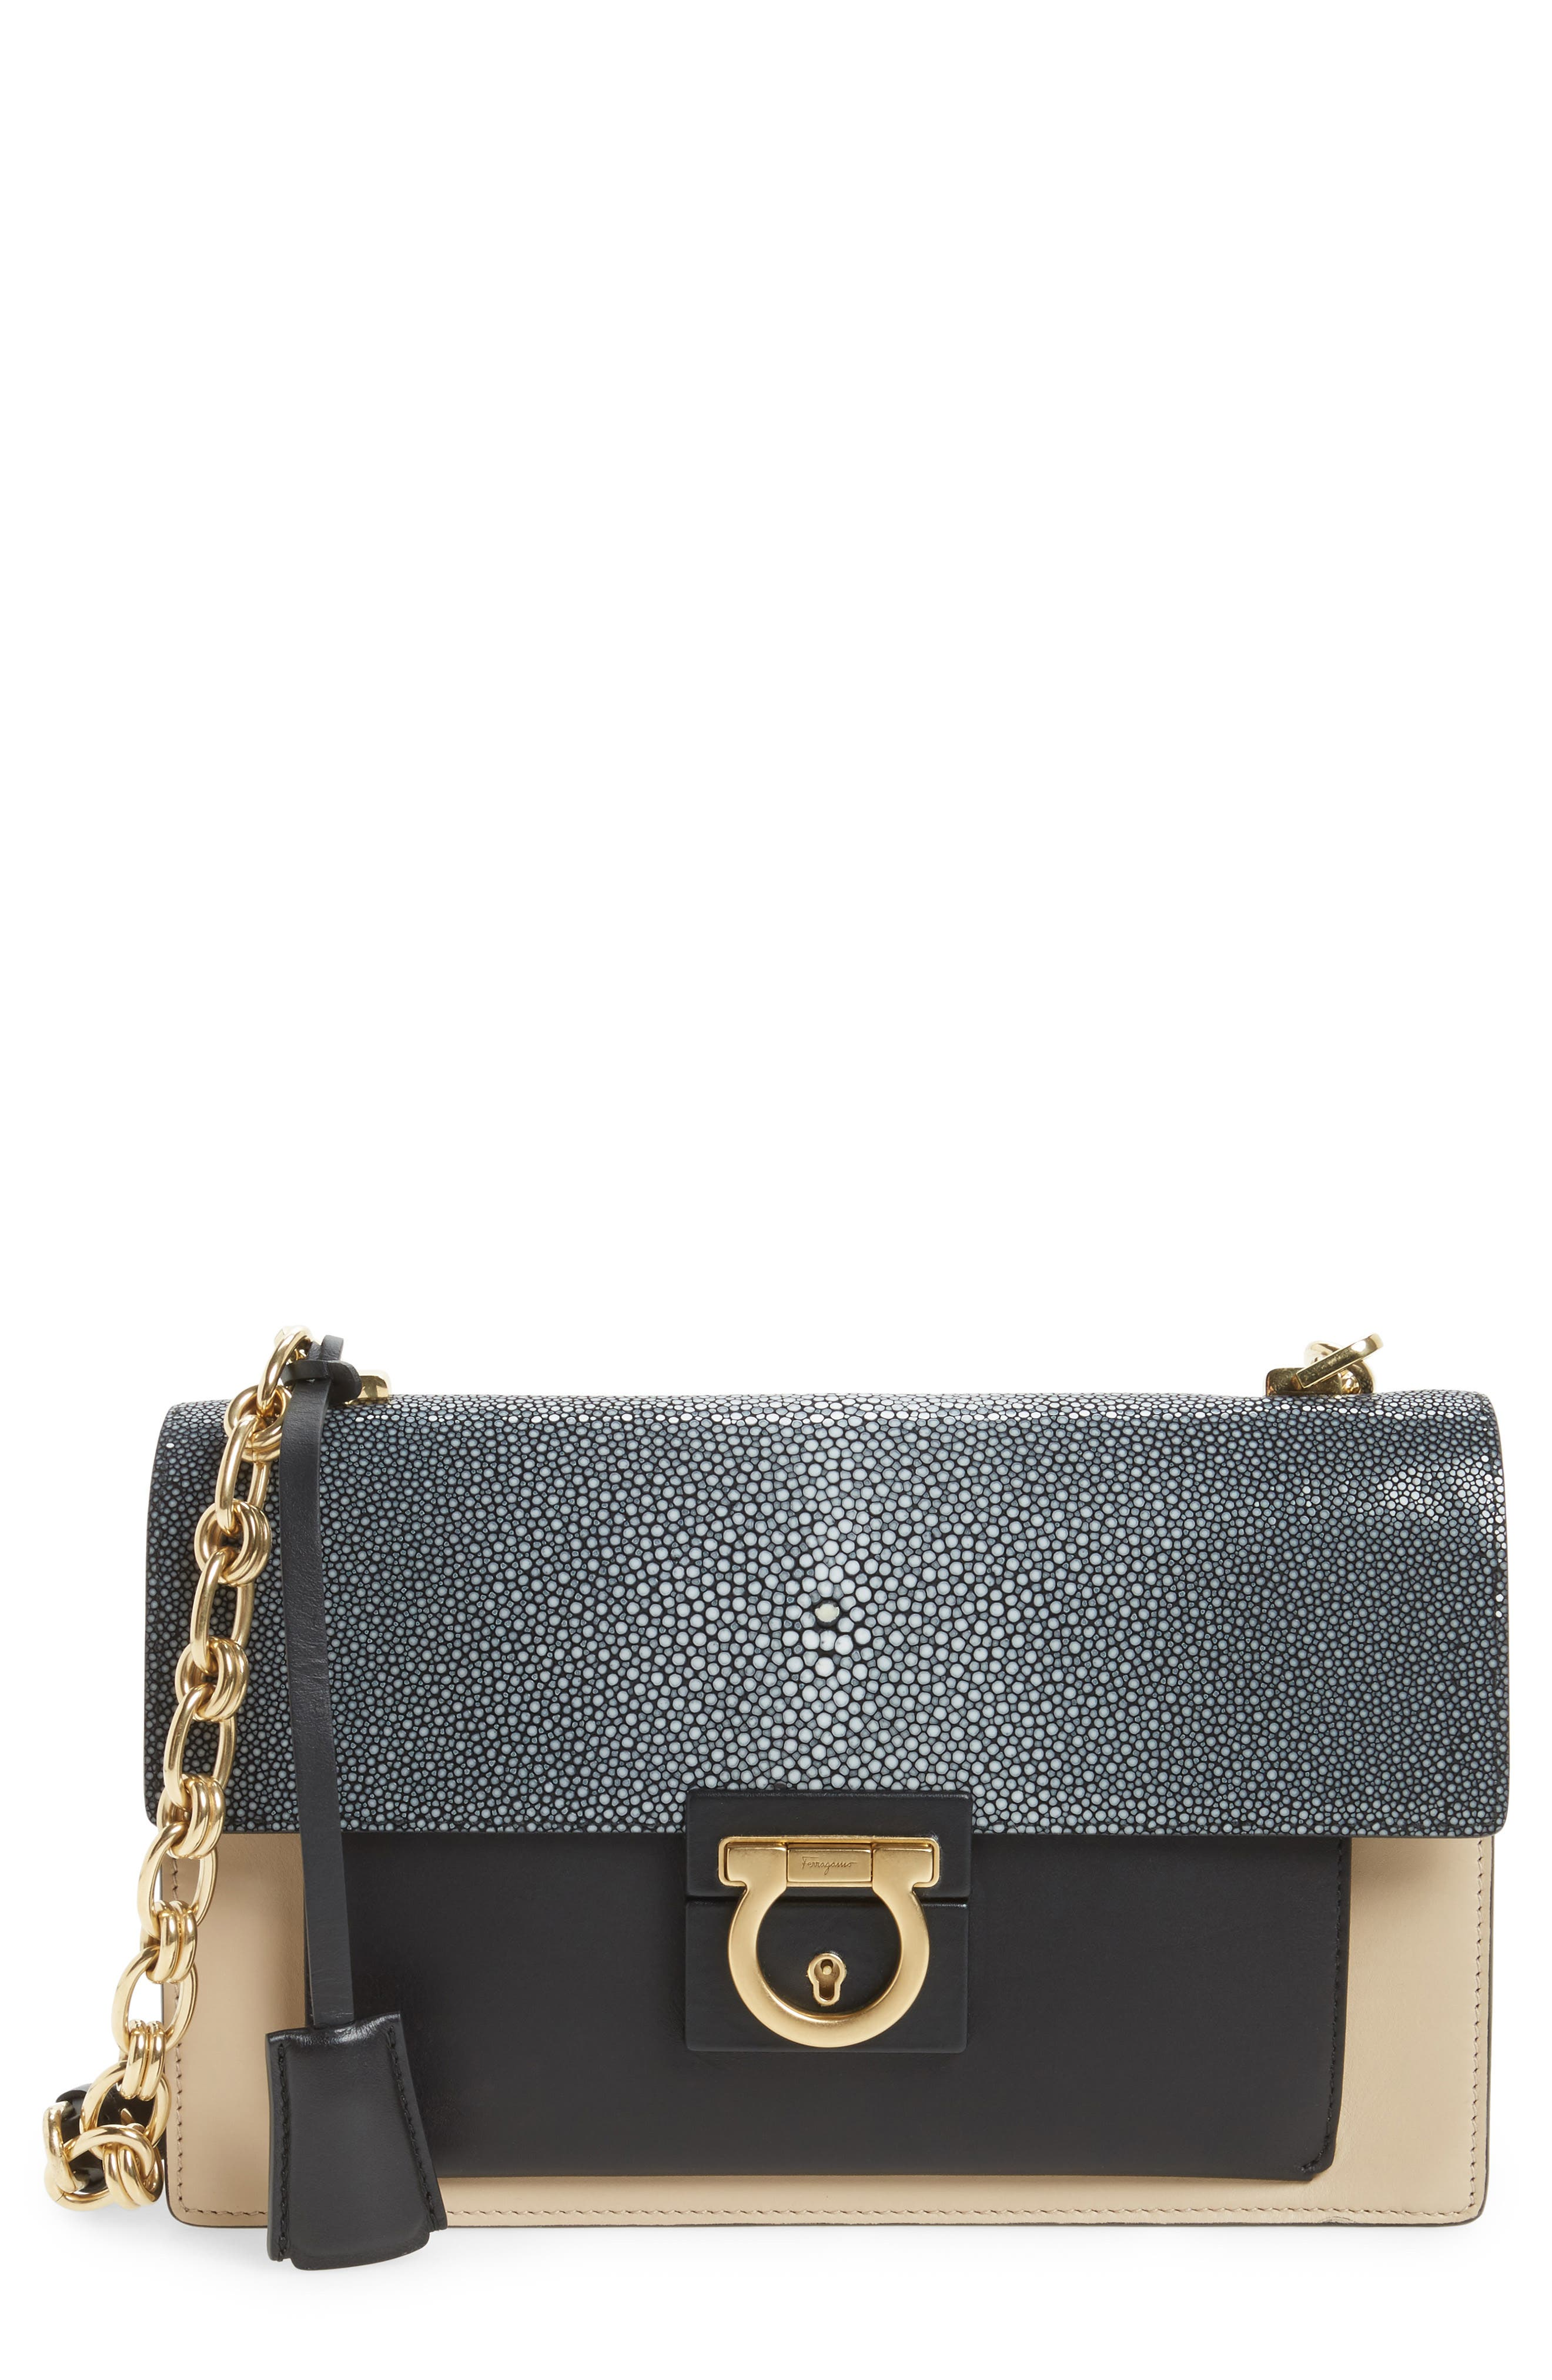 Salvatore Ferragamo Stingray Leather Crossbody Bag